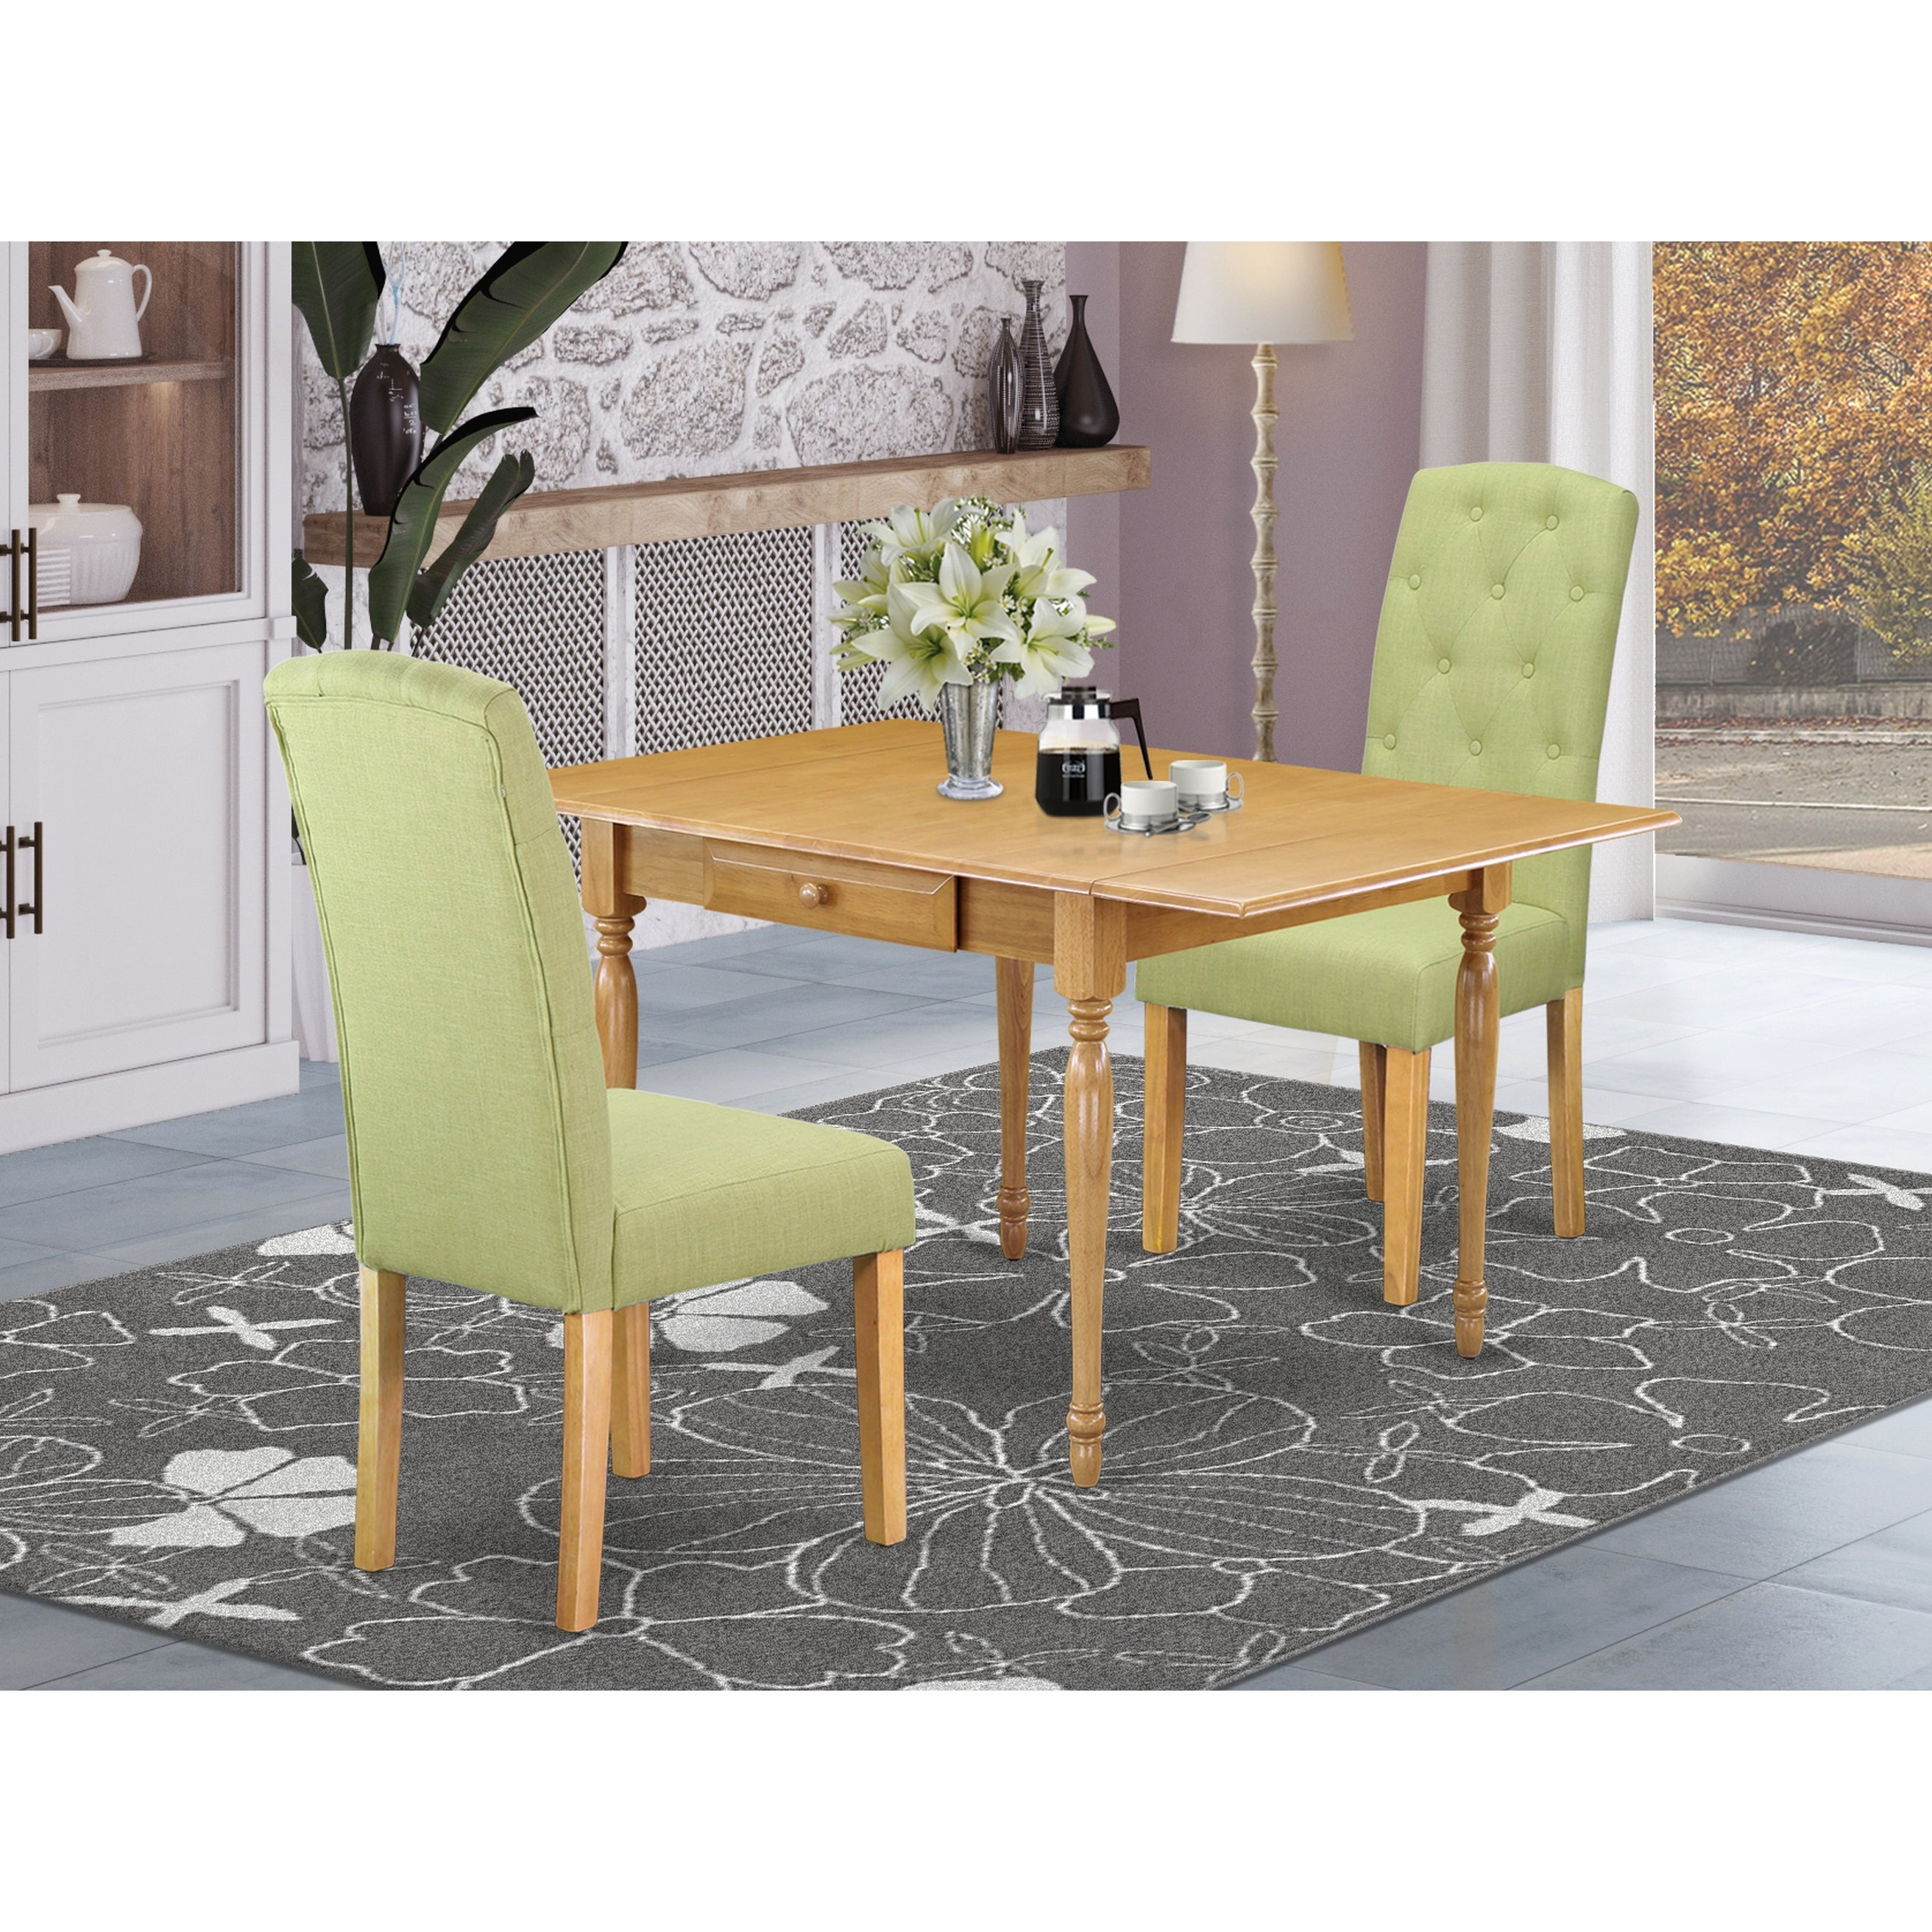 Small Dining Table And Parson Chairs With Lime Green Color Linen Fabric Upholstery Seat Number Of Chairs Option Overstock 32448866